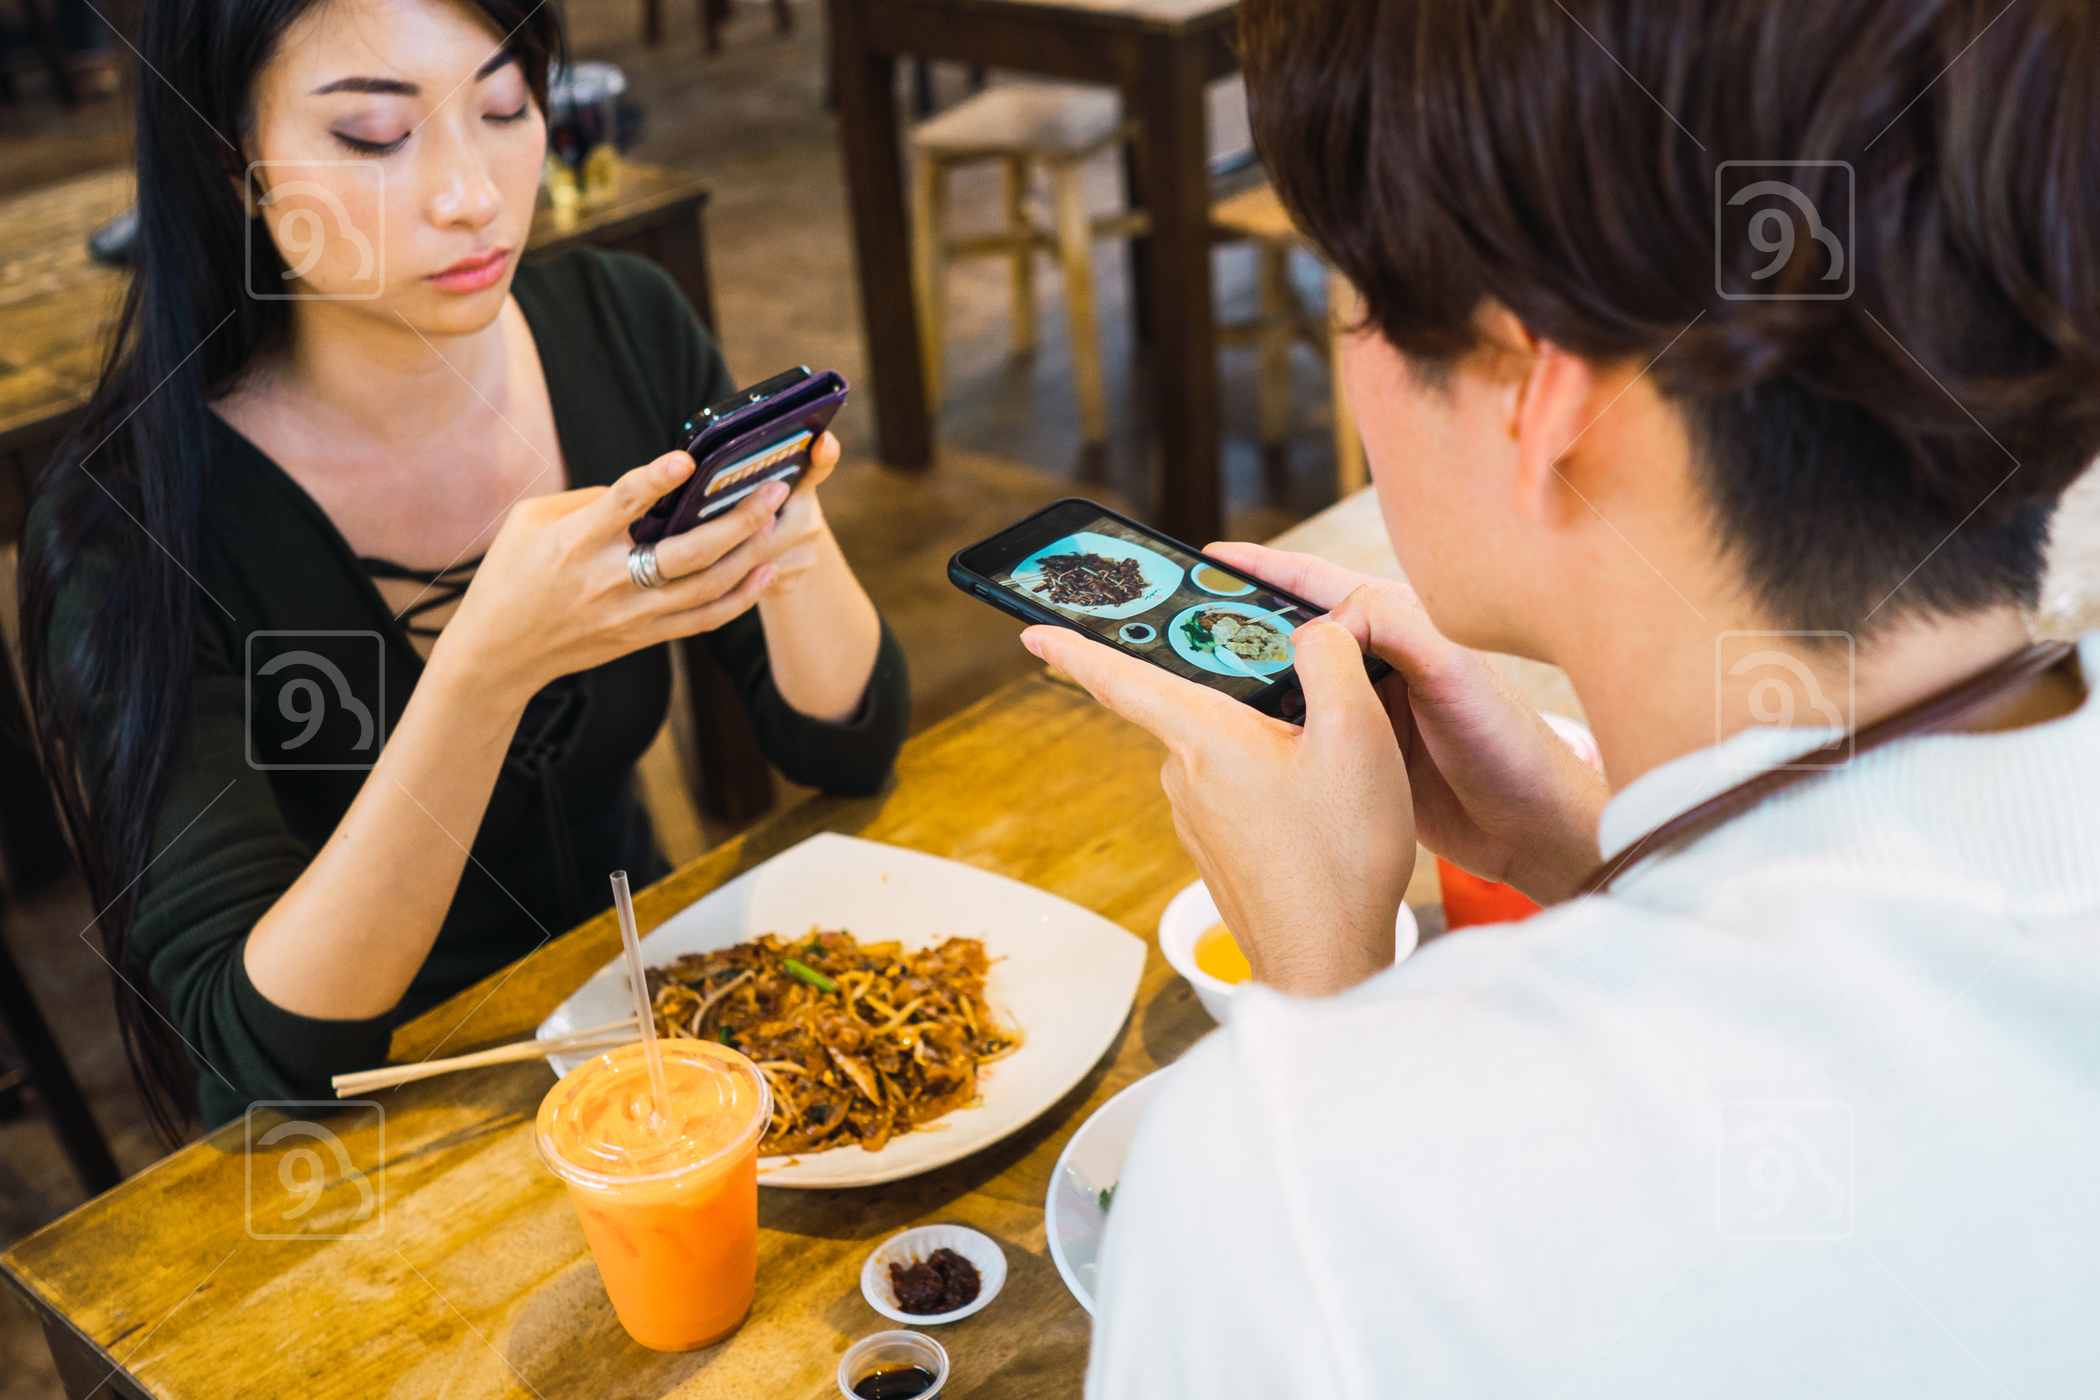 Asian man and woman taking food selfies